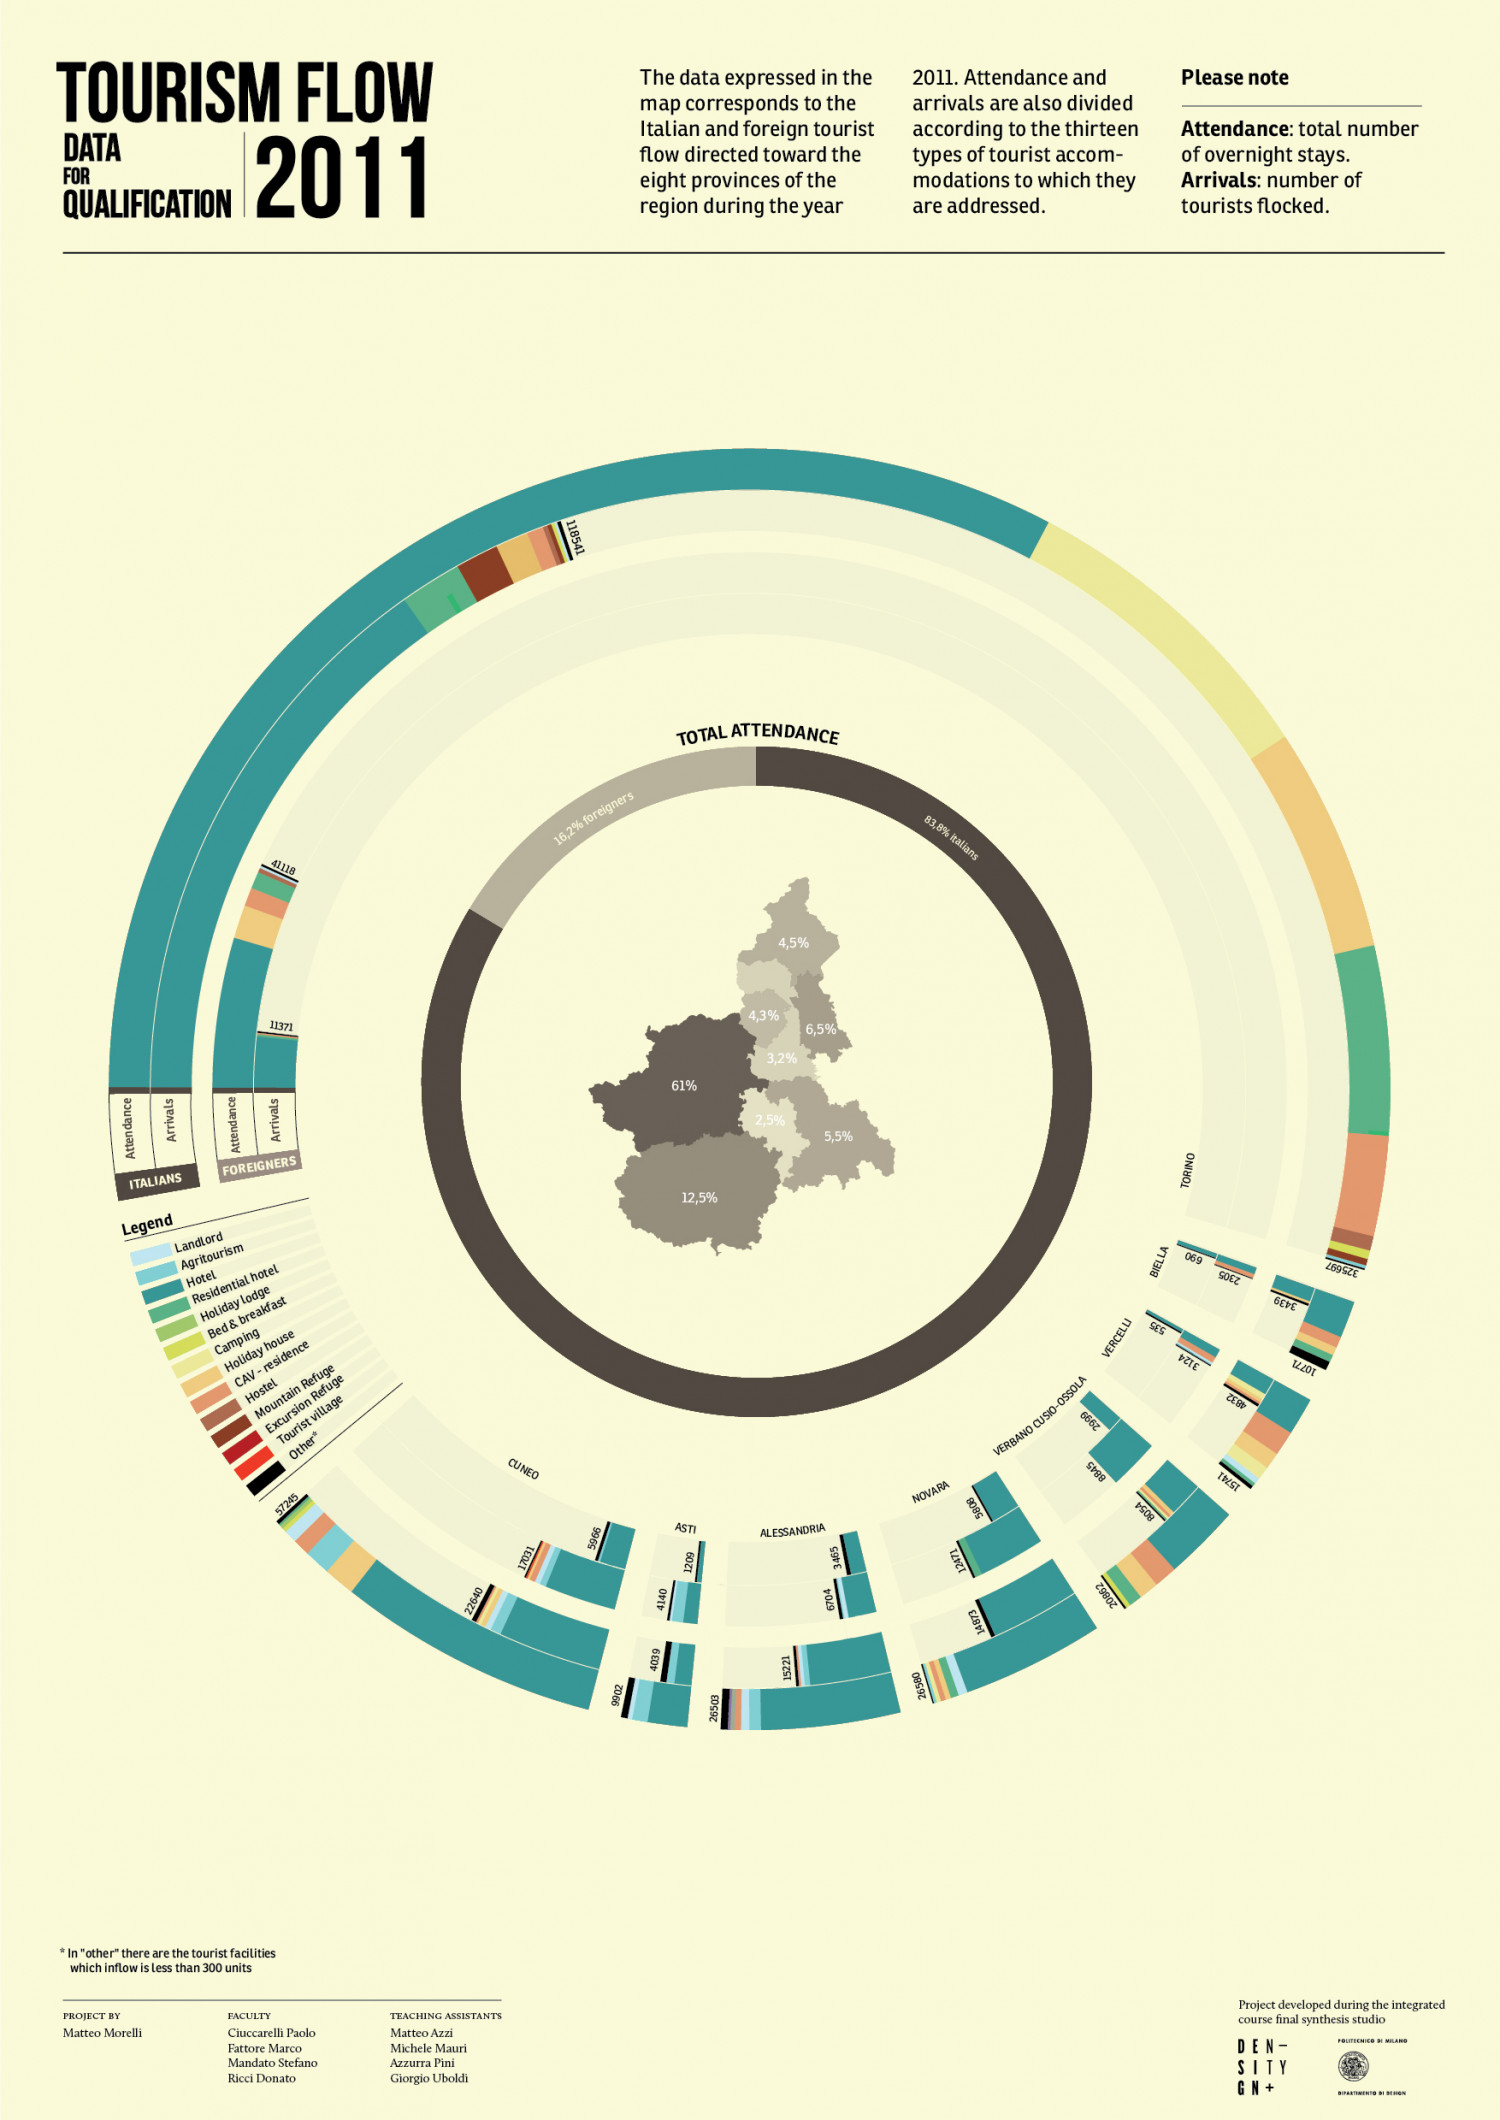 Tourism flow in Piedmont 2011 Infographic